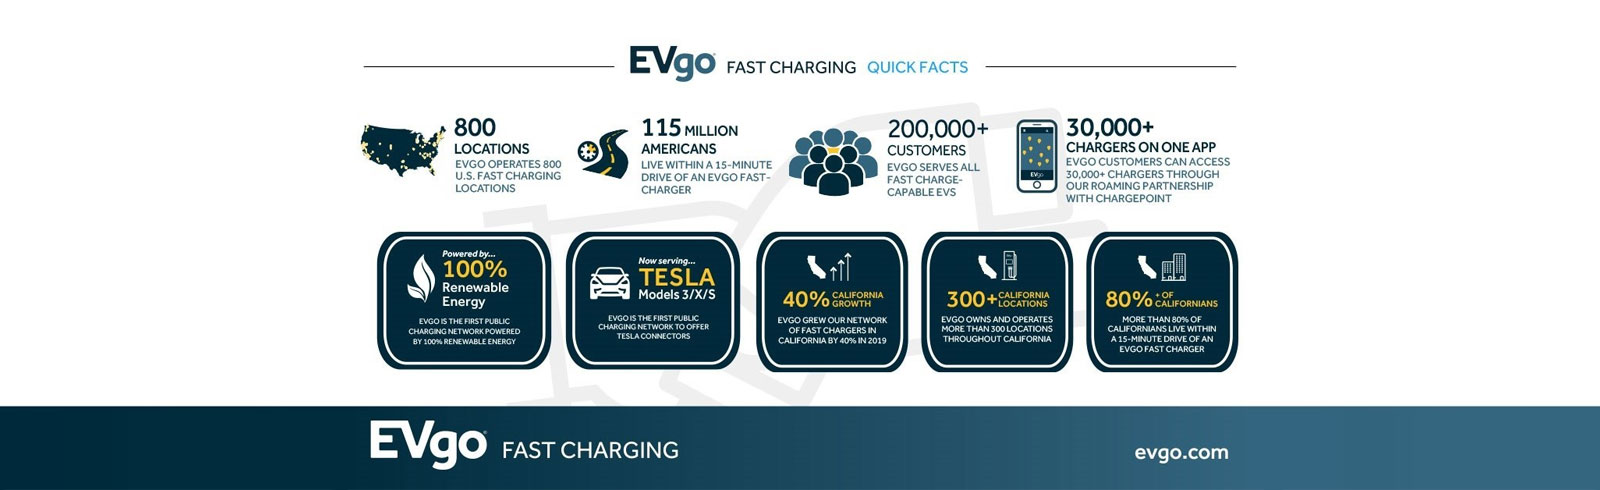 EVgo opened its 800th fast charging location